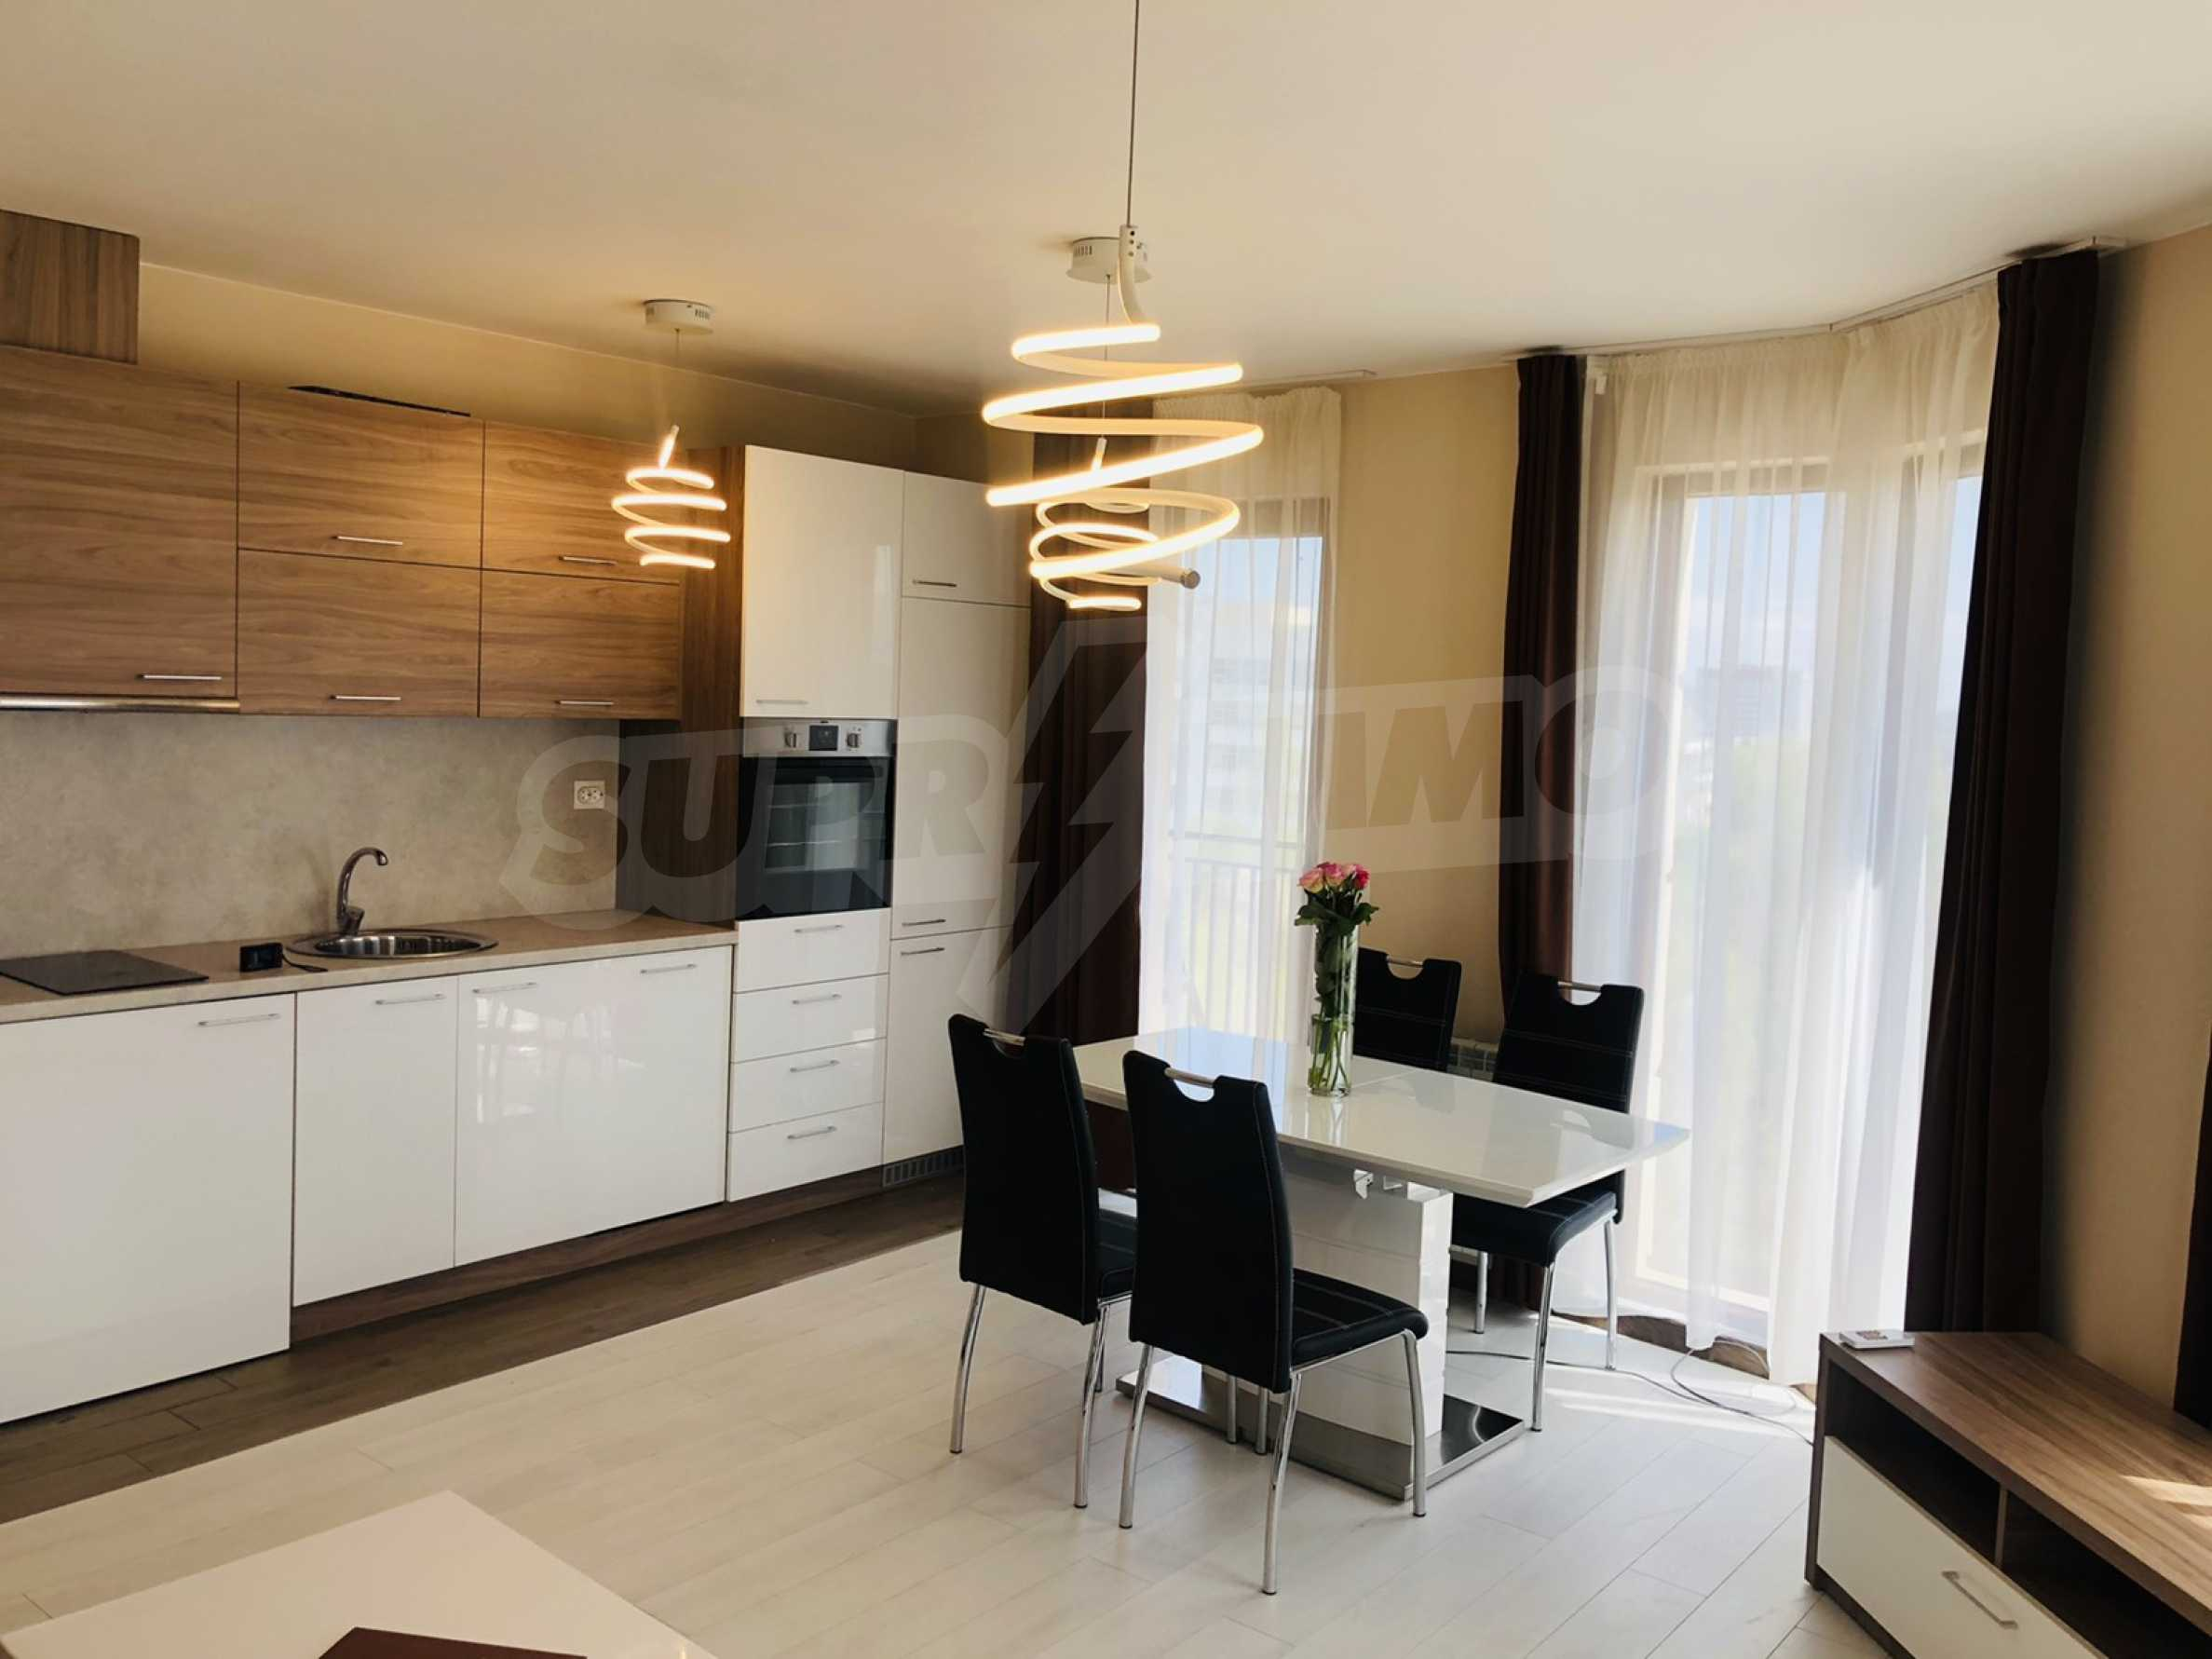 Two-bedroom, fully furnished, designer apartment in Student City 3